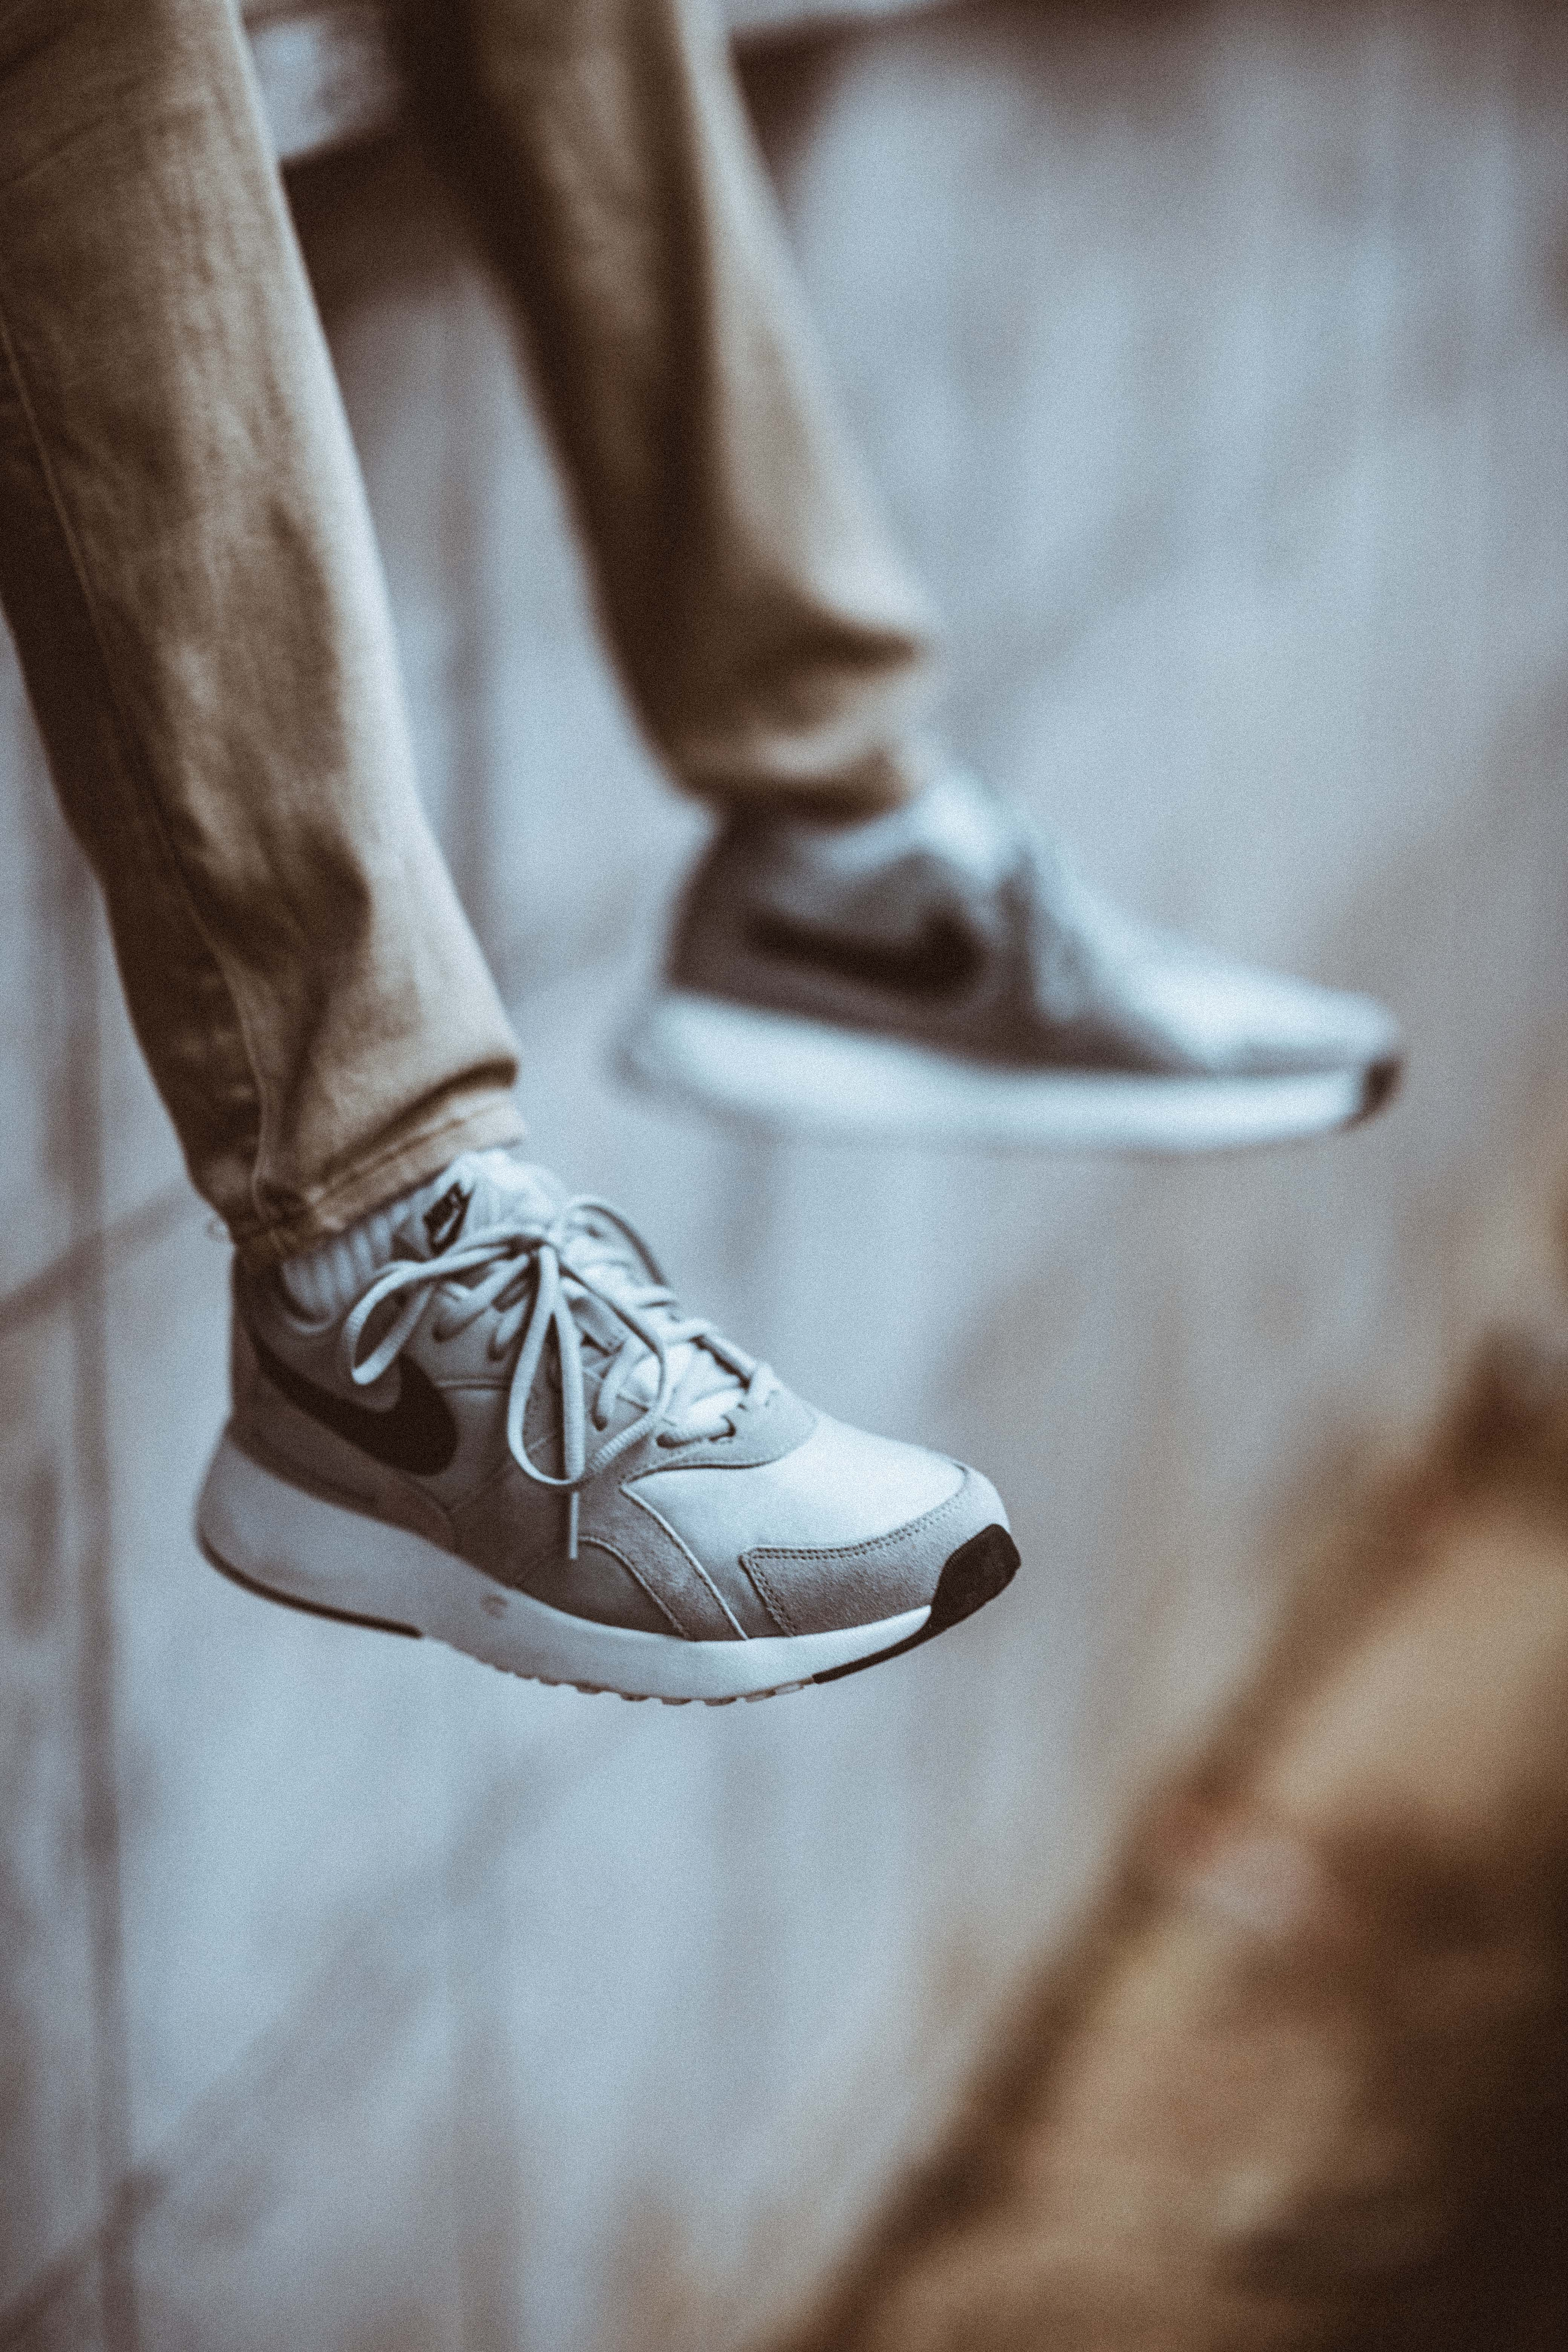 Selective Focus Photo of Person Wearing Gray Nike Shoes